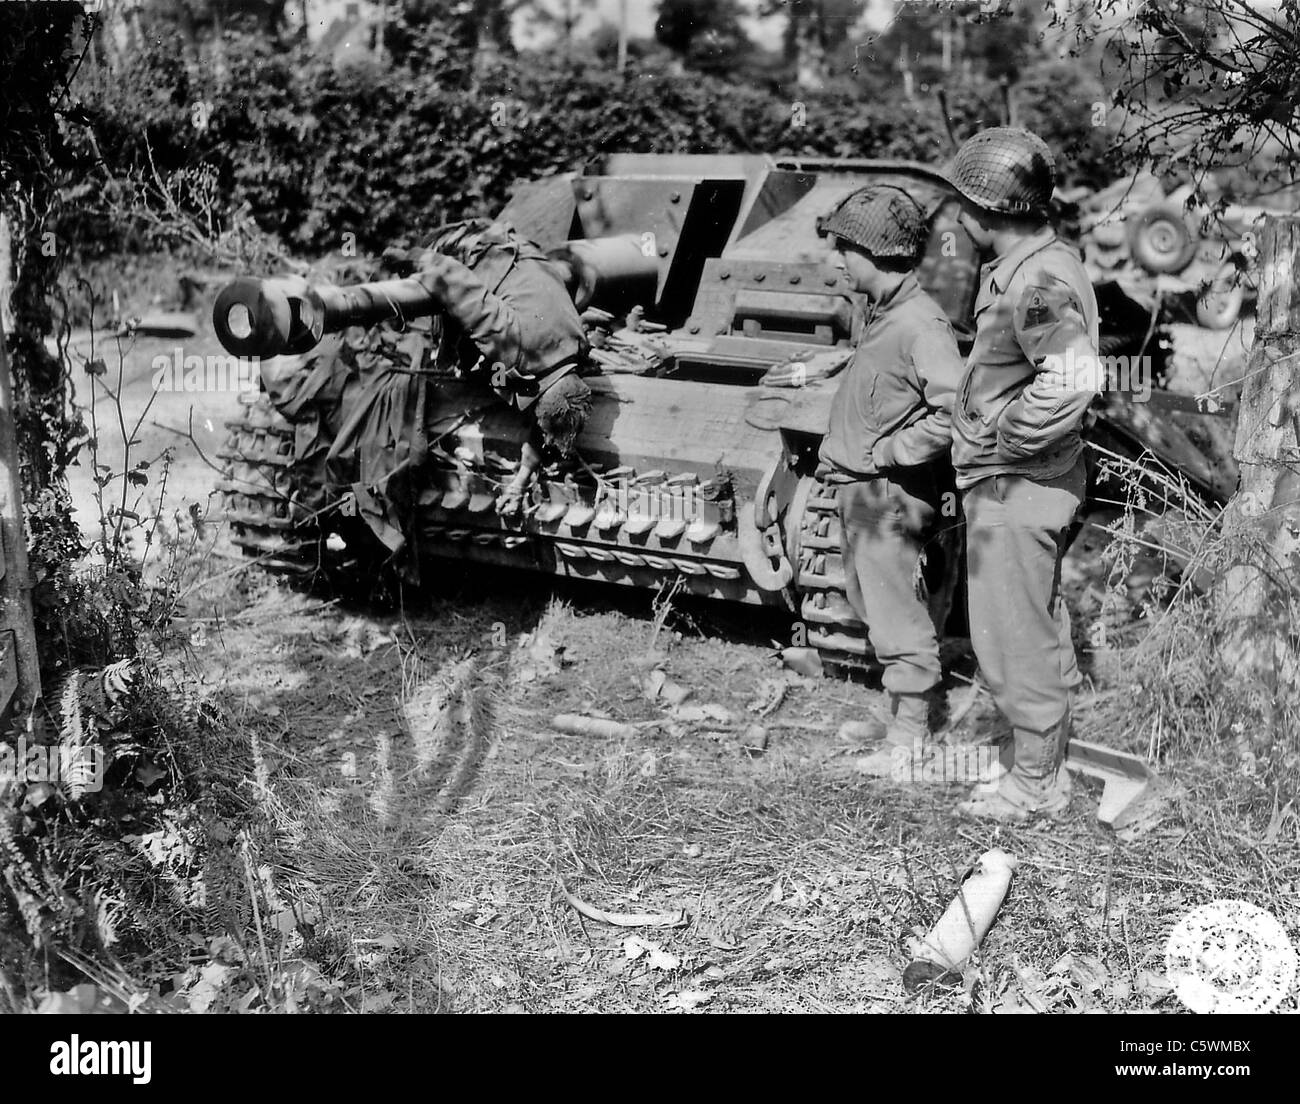 normandy-invasion-1944-two-us-soldiers-f